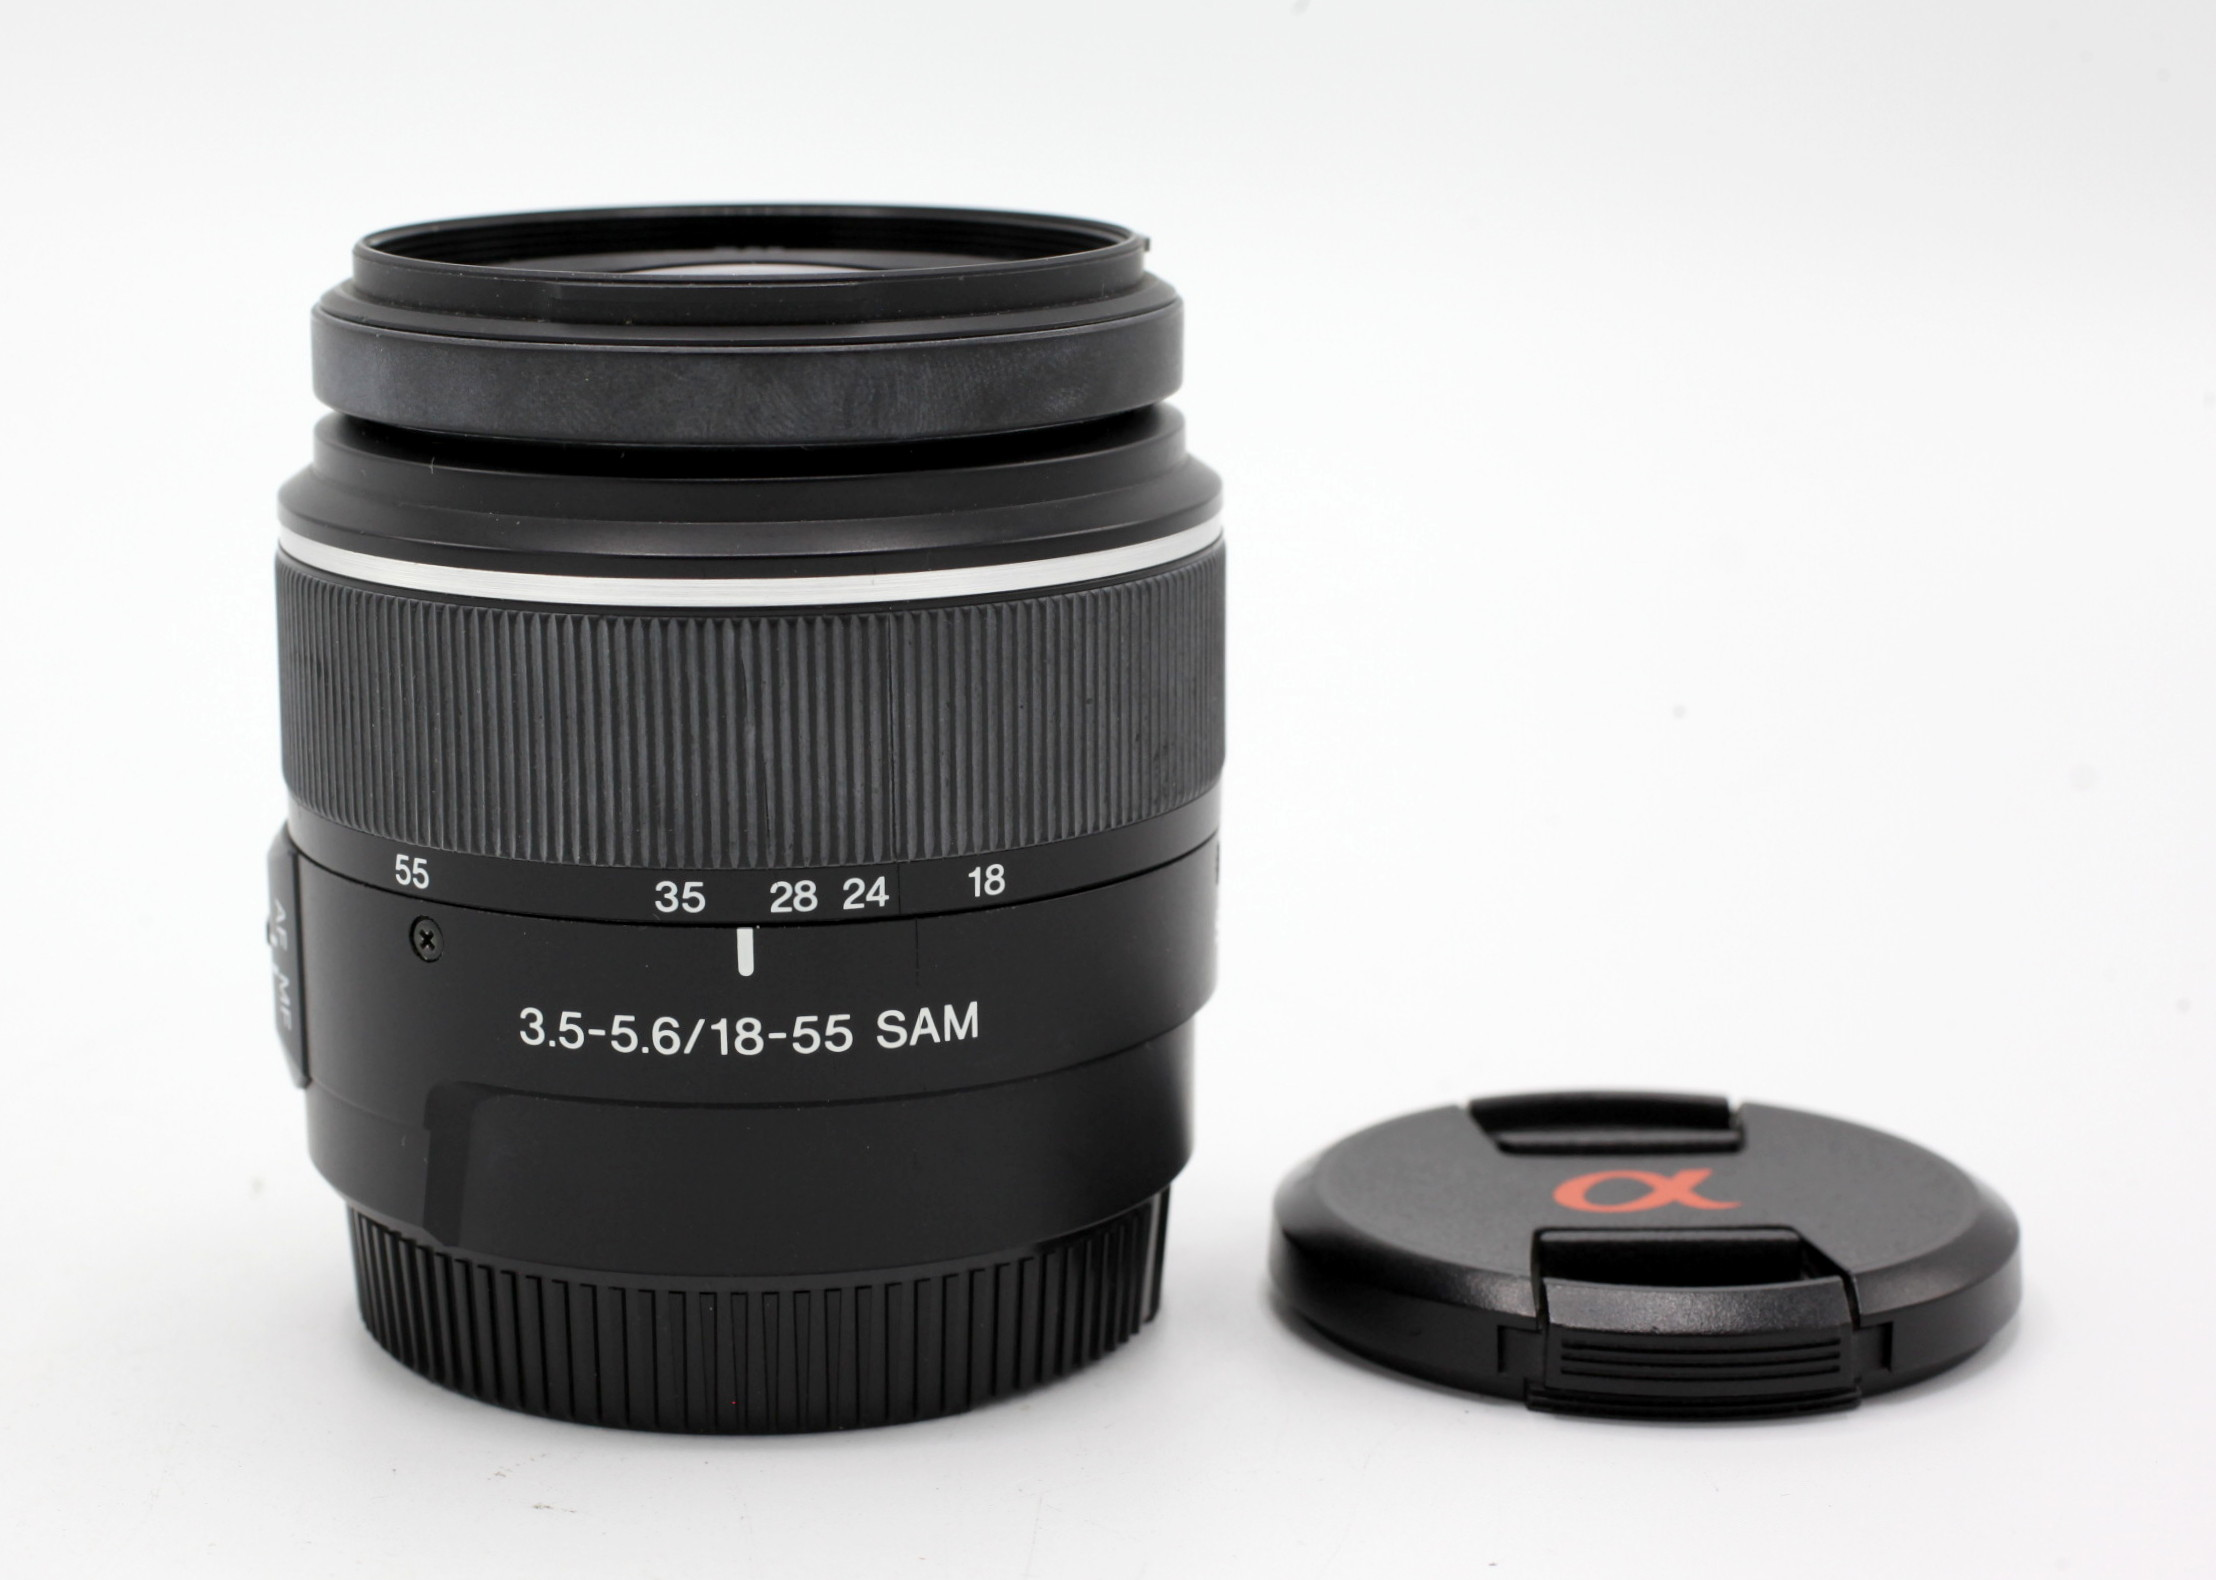 Sony 18-55mm F/3.5-5.6 DT SAM occasion